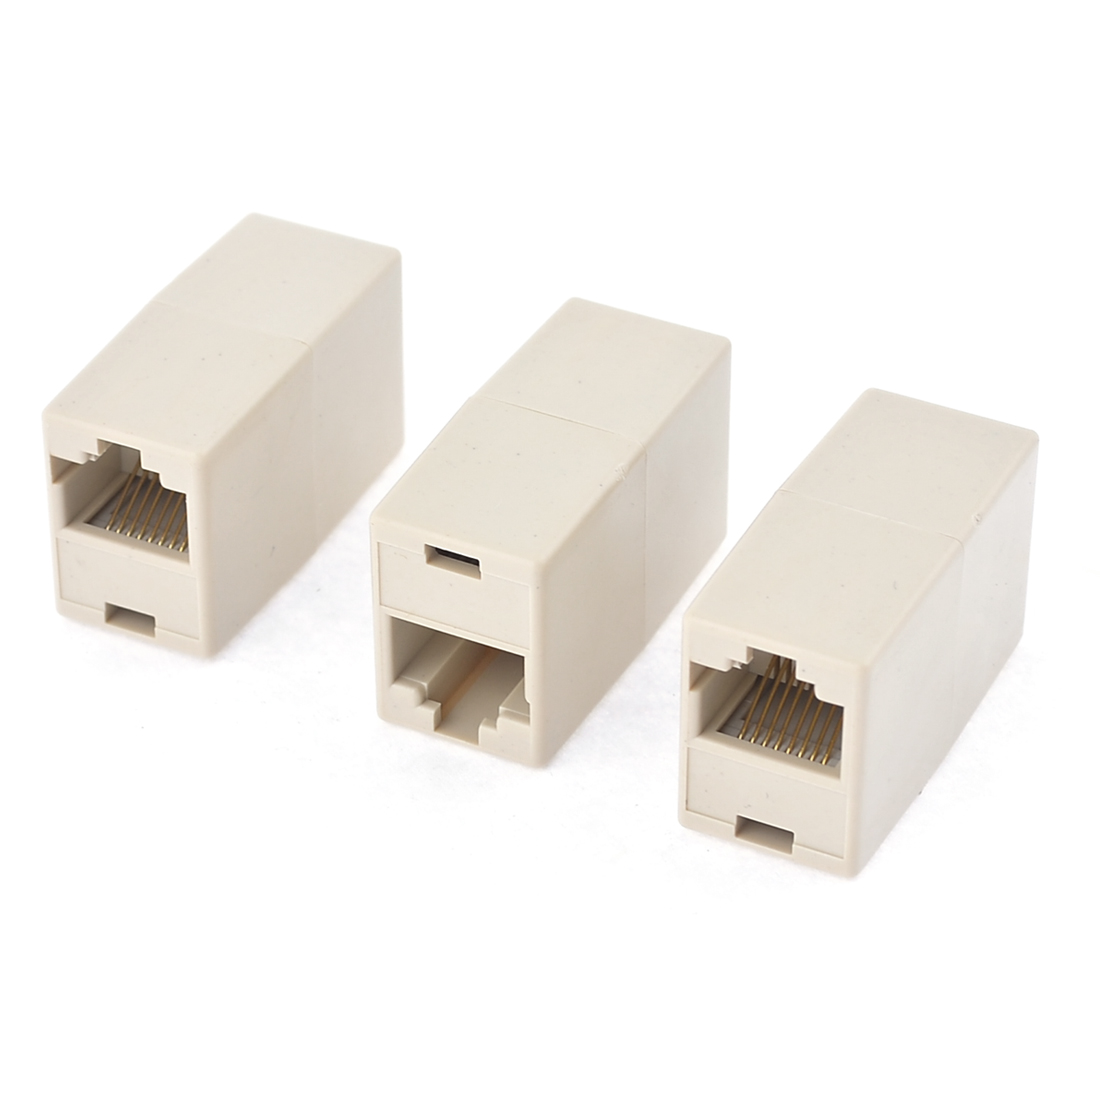 RJ45 8P8C Fax Phone Straight Coupler Connector Extender 3 Pcs